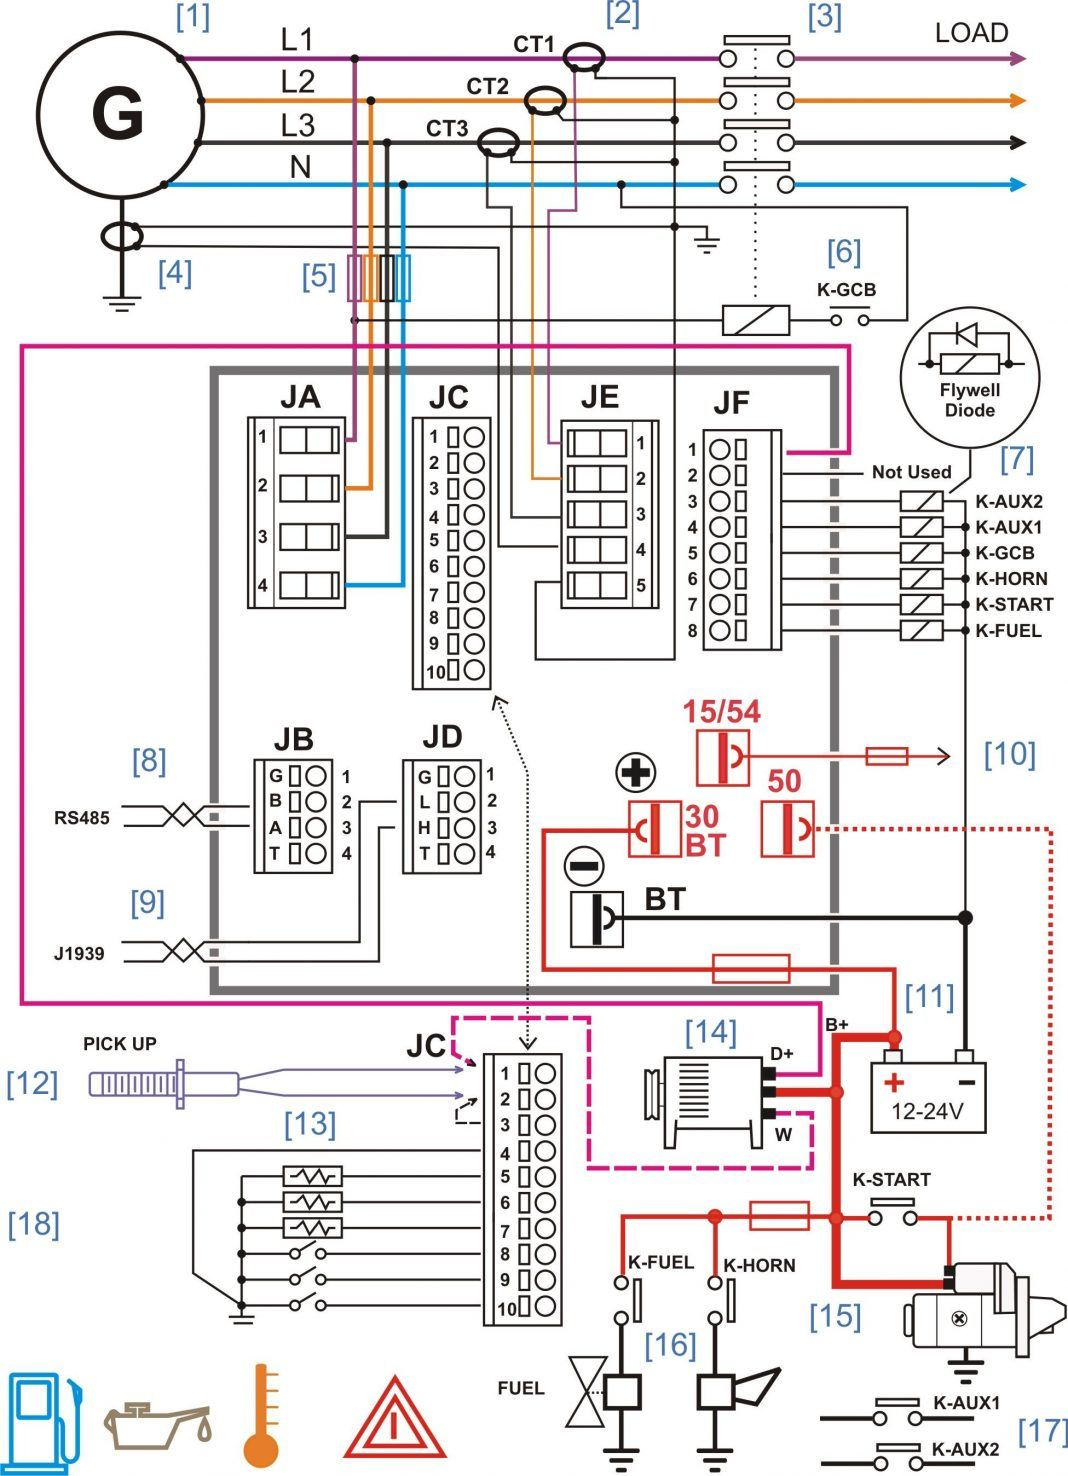 20 Electrical Wiring Diagram Software Design Bacamajalah In 2020 Electrical Circuit Diagram Electrical Diagram Electrical Wiring Diagram